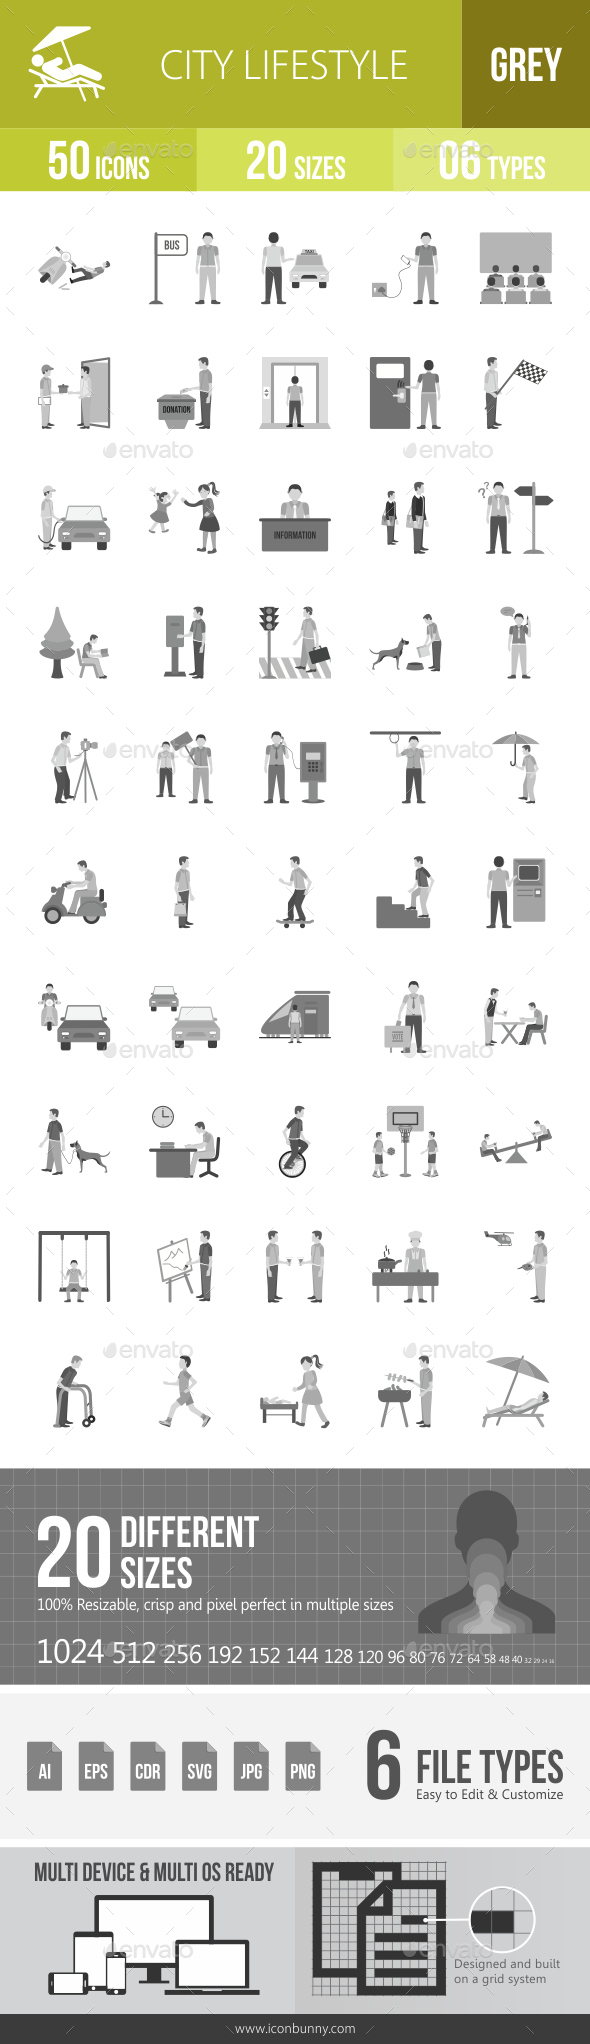 City Lifestyle Greyscale Icons - Icons